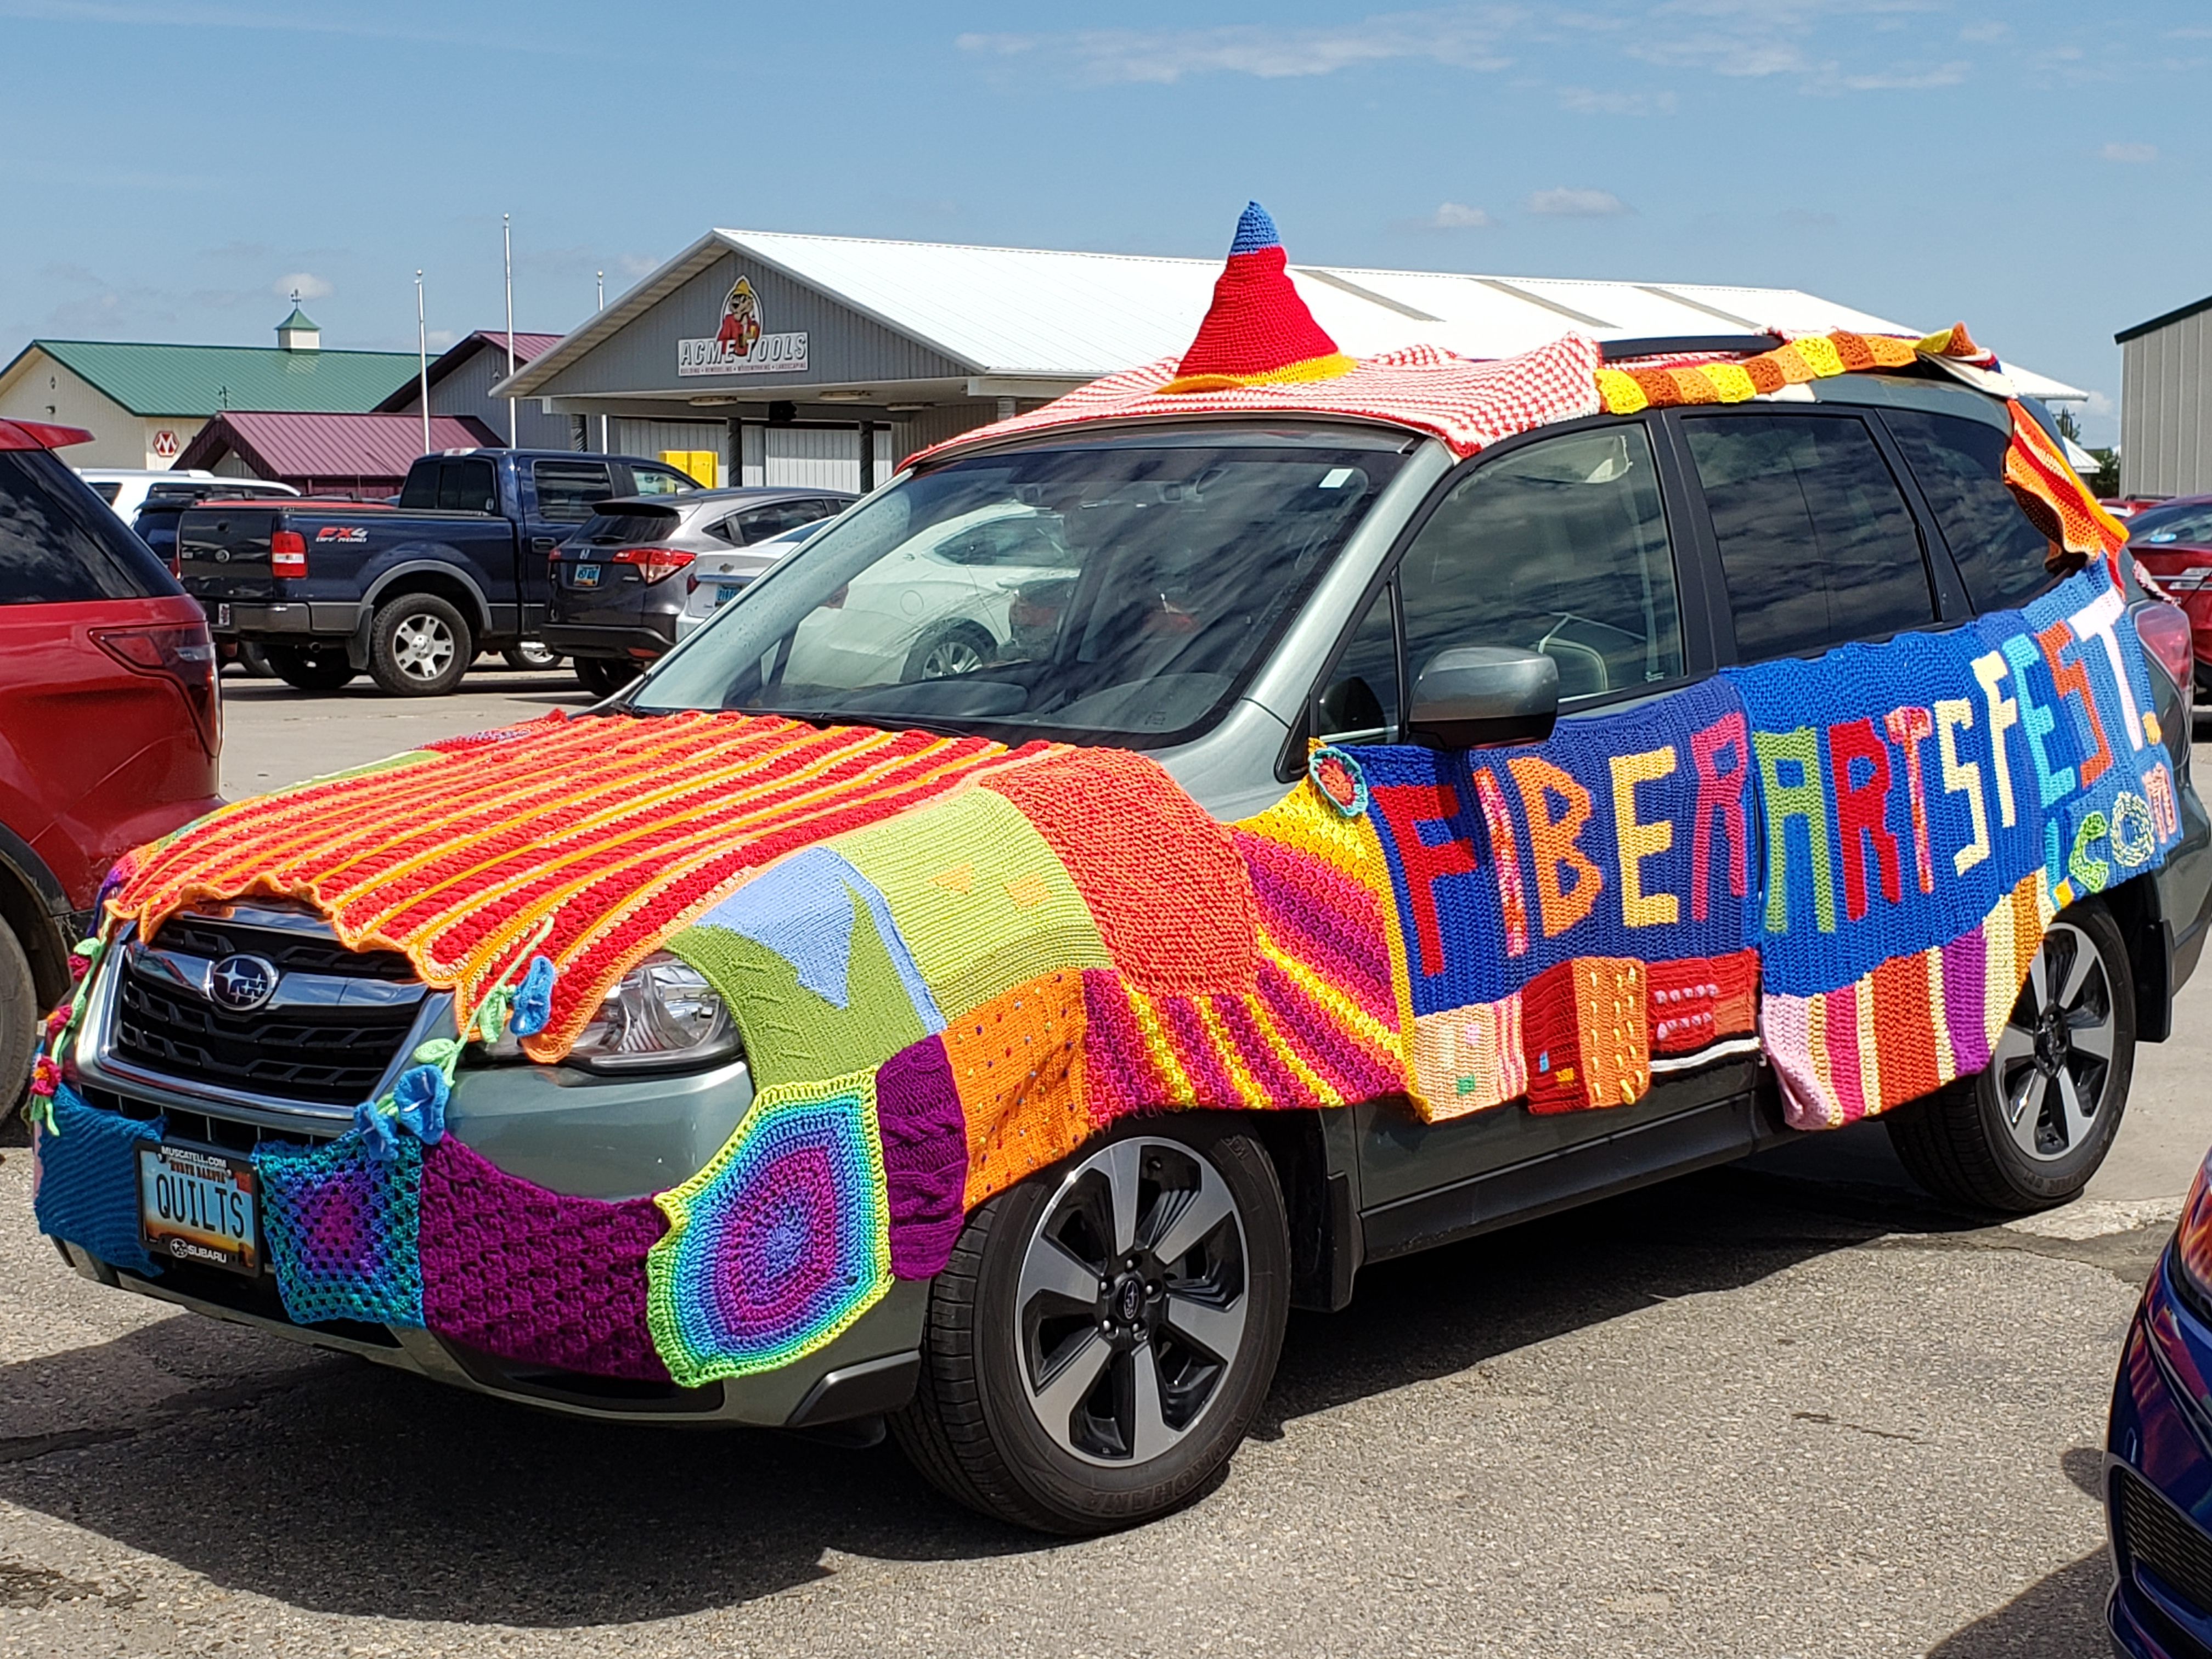 Subaru car 'quilted' with material and the brand 'fiberartsfest.com'